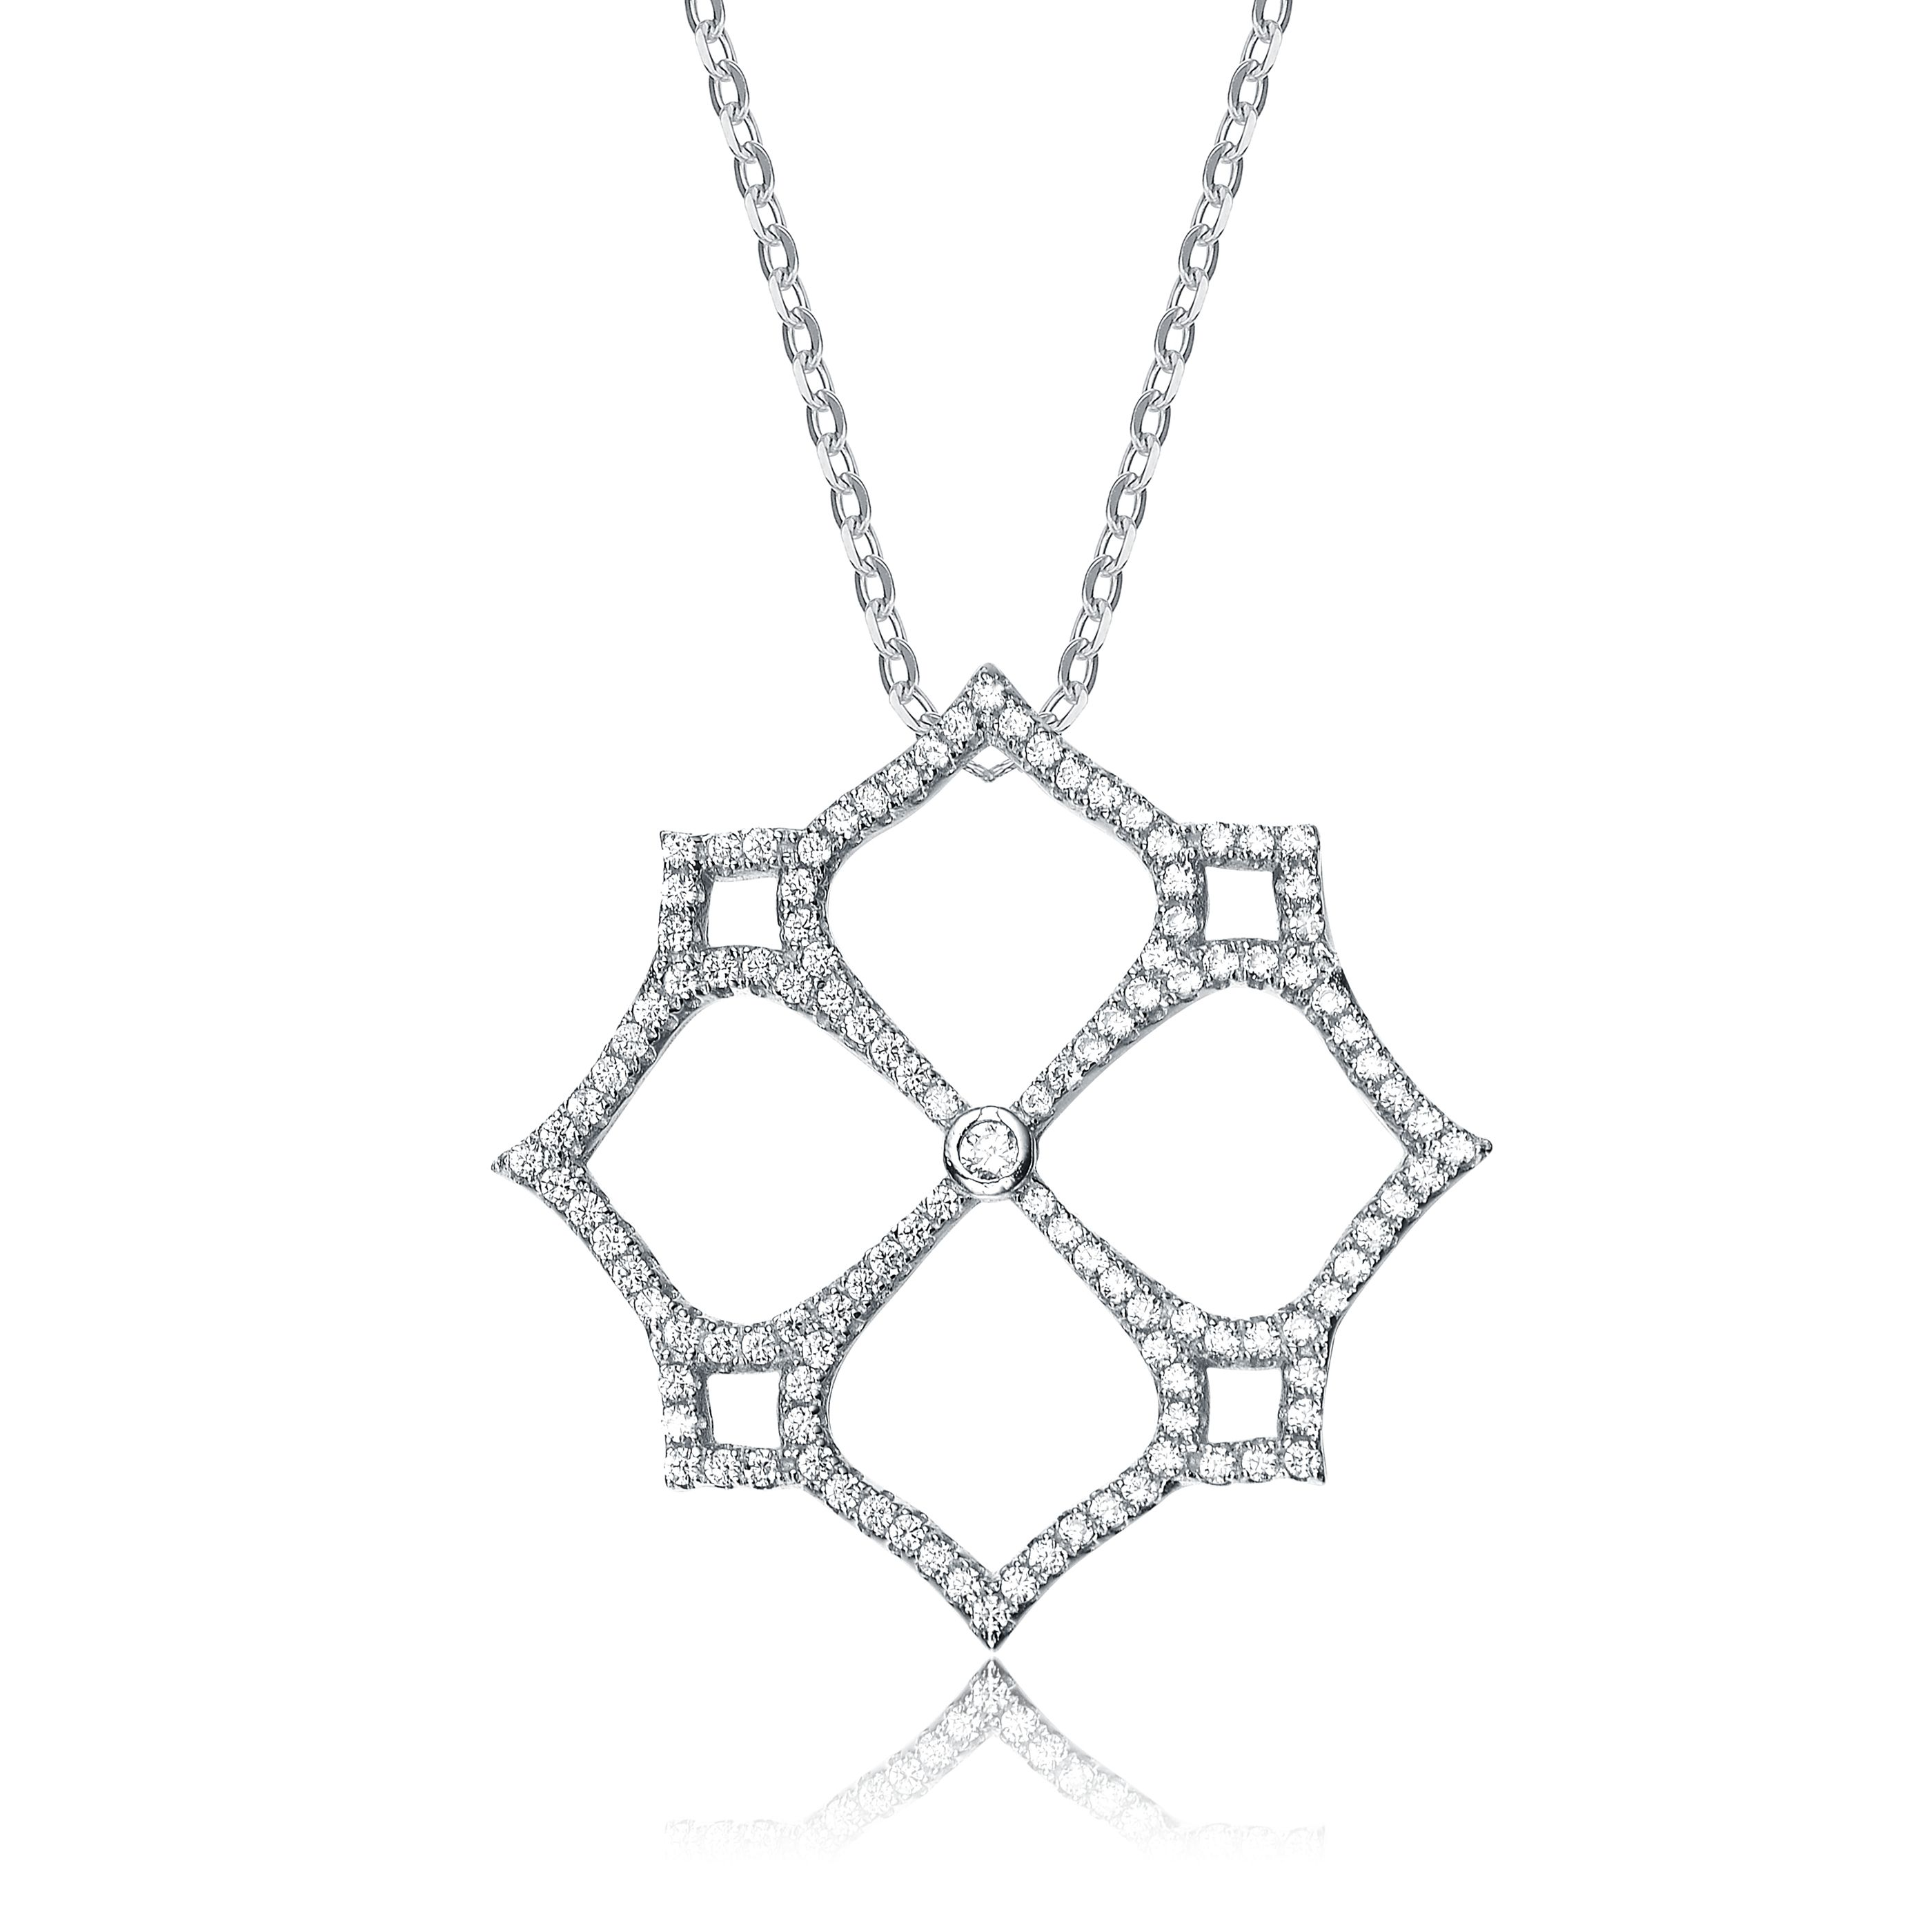 Collette Z Sterling Silver Pave-set Cubic Zirconia Cutout Necklace